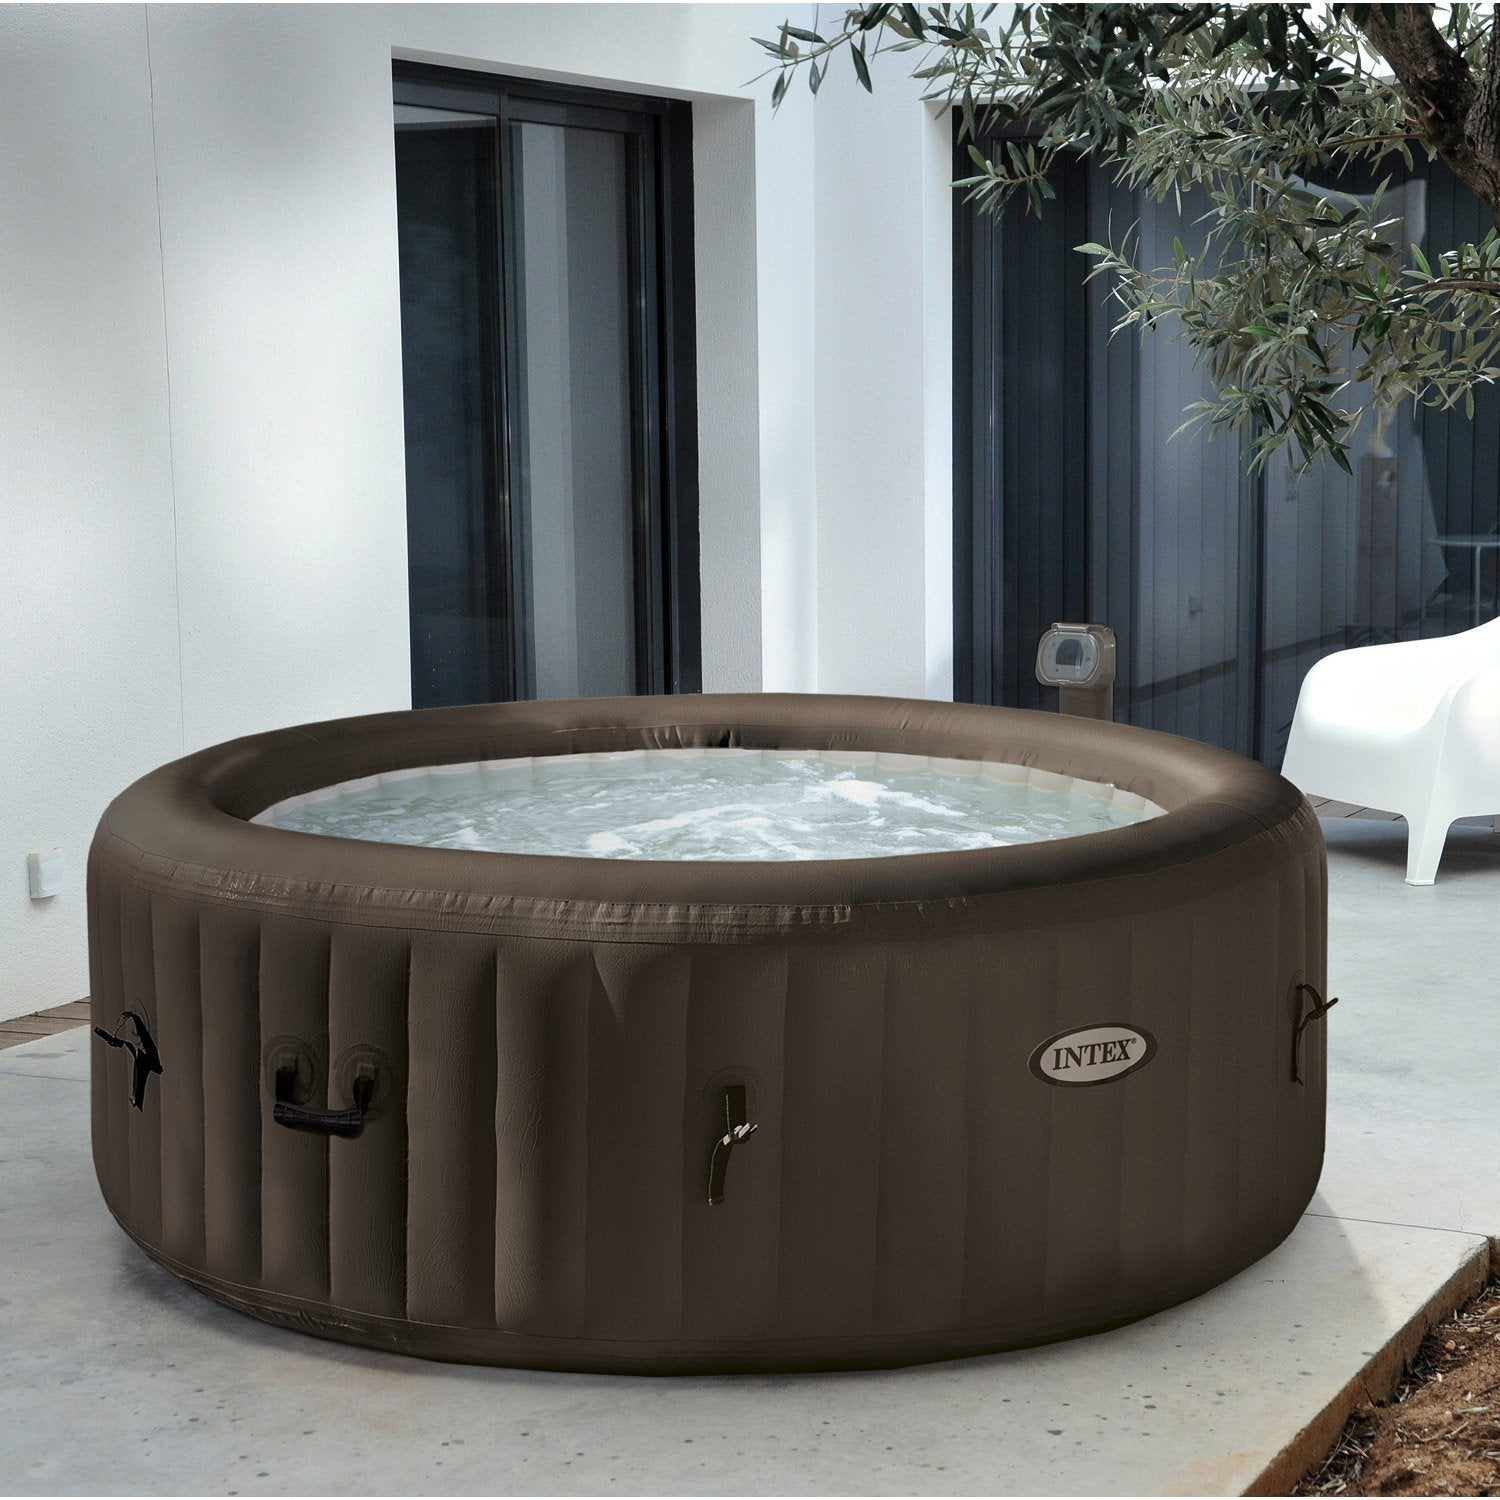 spa gonflable intex purespa jets rond, 4 places assises | leroy merlin